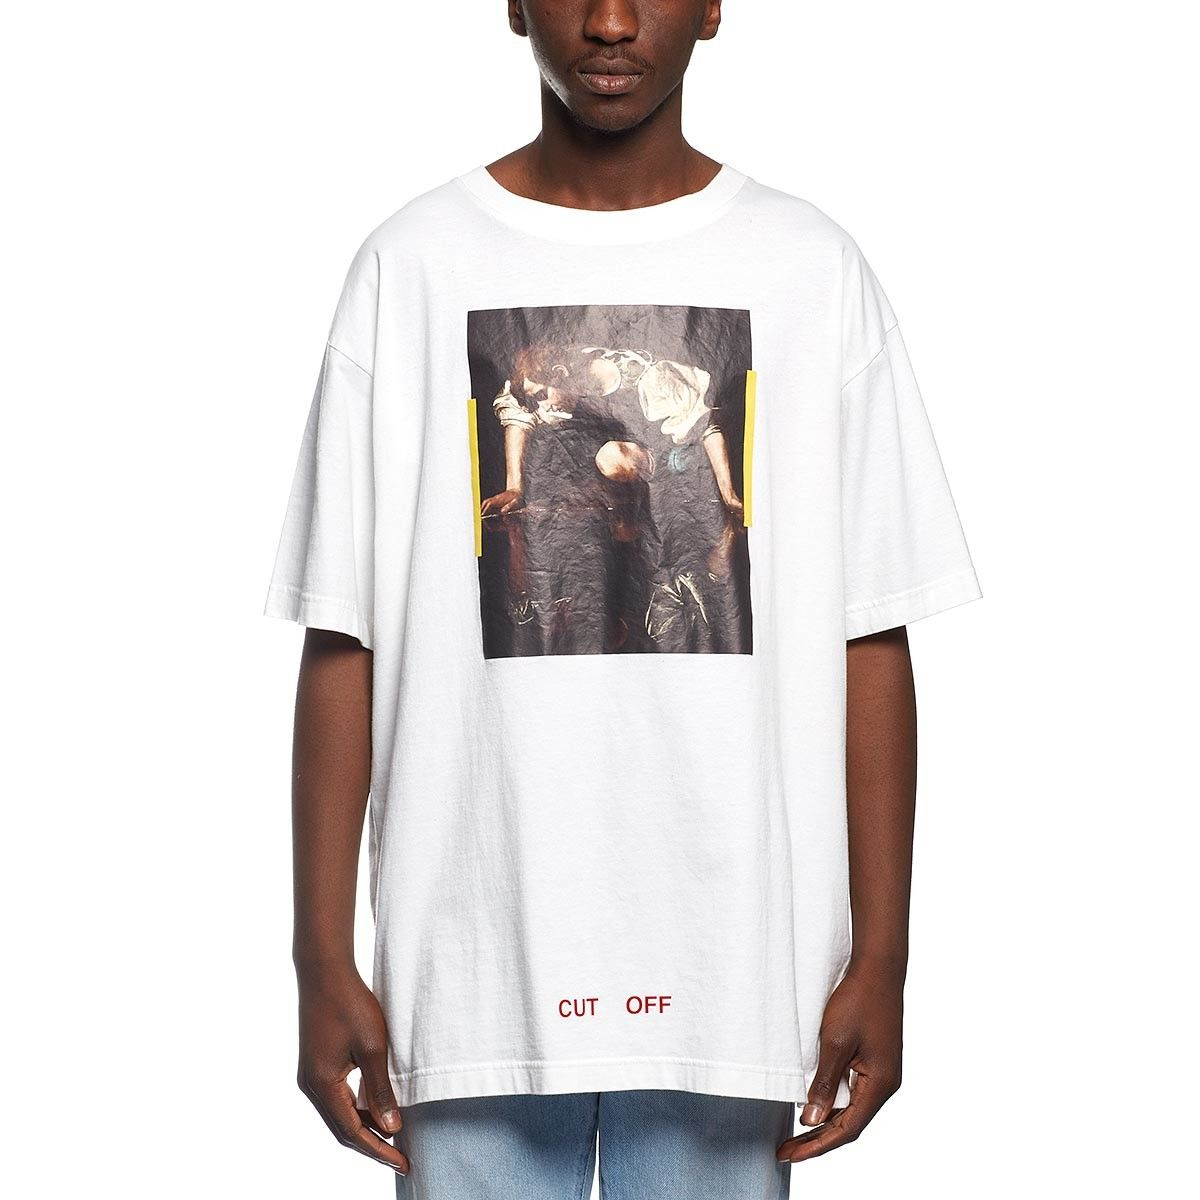 Narciso t-shirt from the F/W2016-17 Off-White c/o Virgil Abloh collection in white